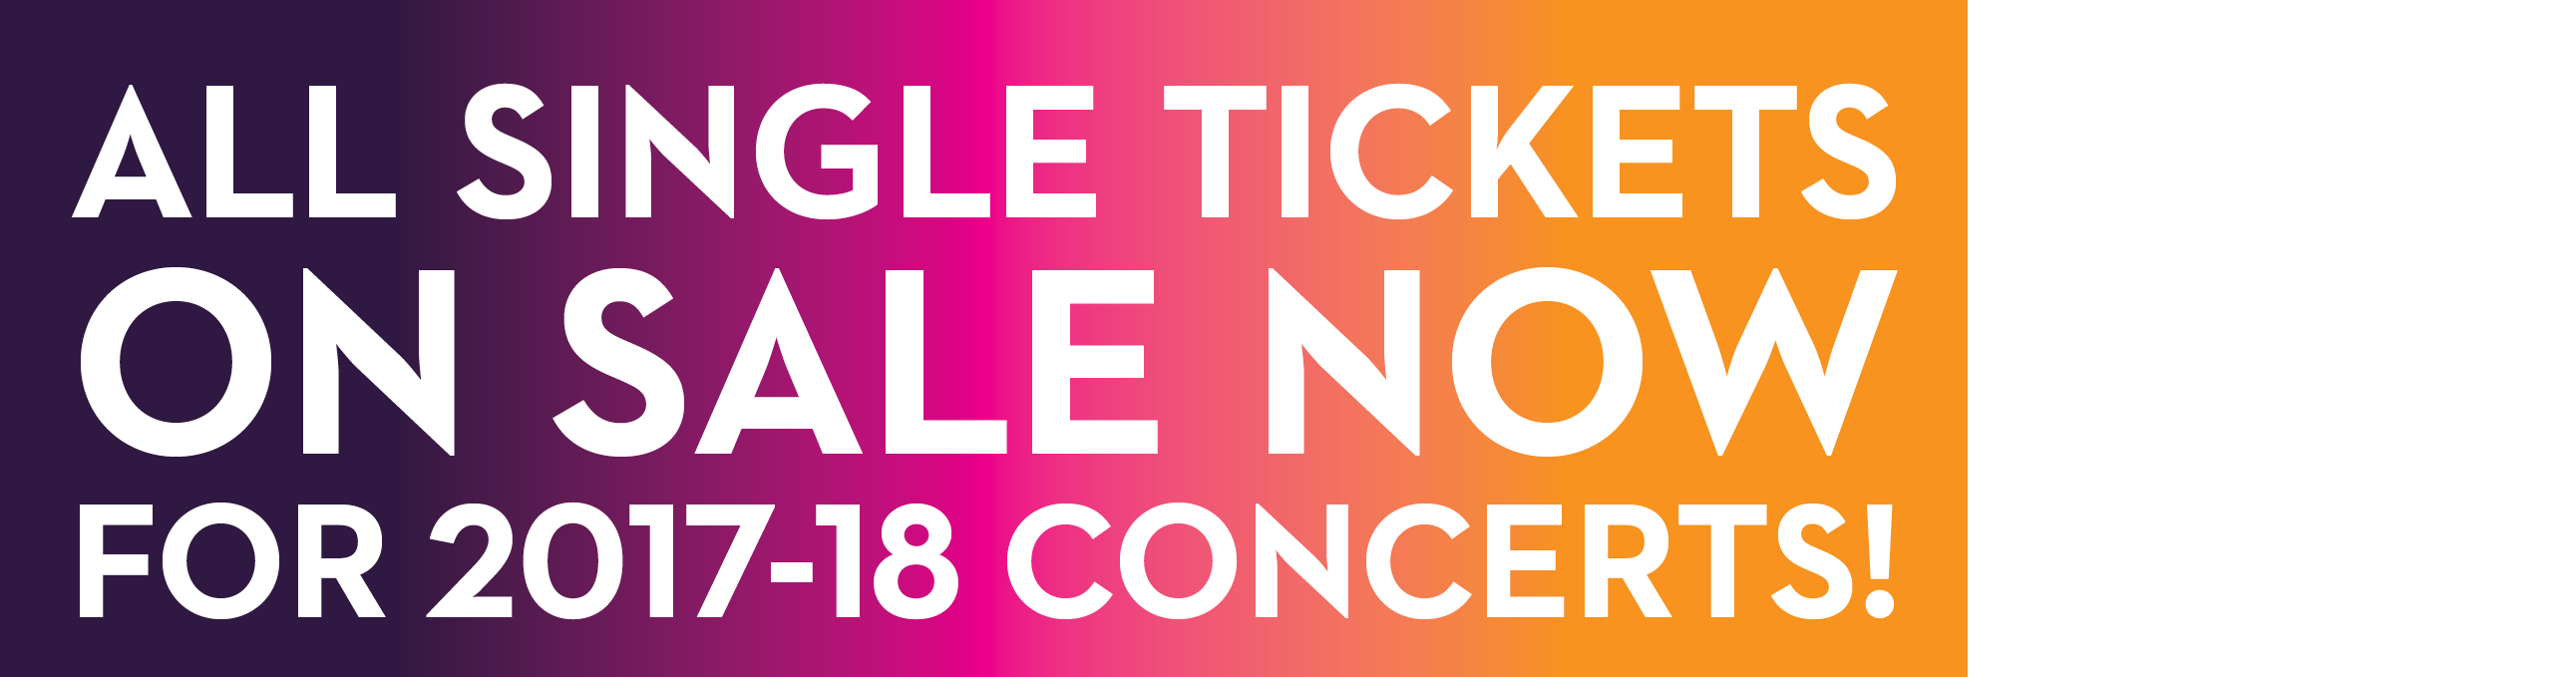 Single Tickets On Sale Day 2017